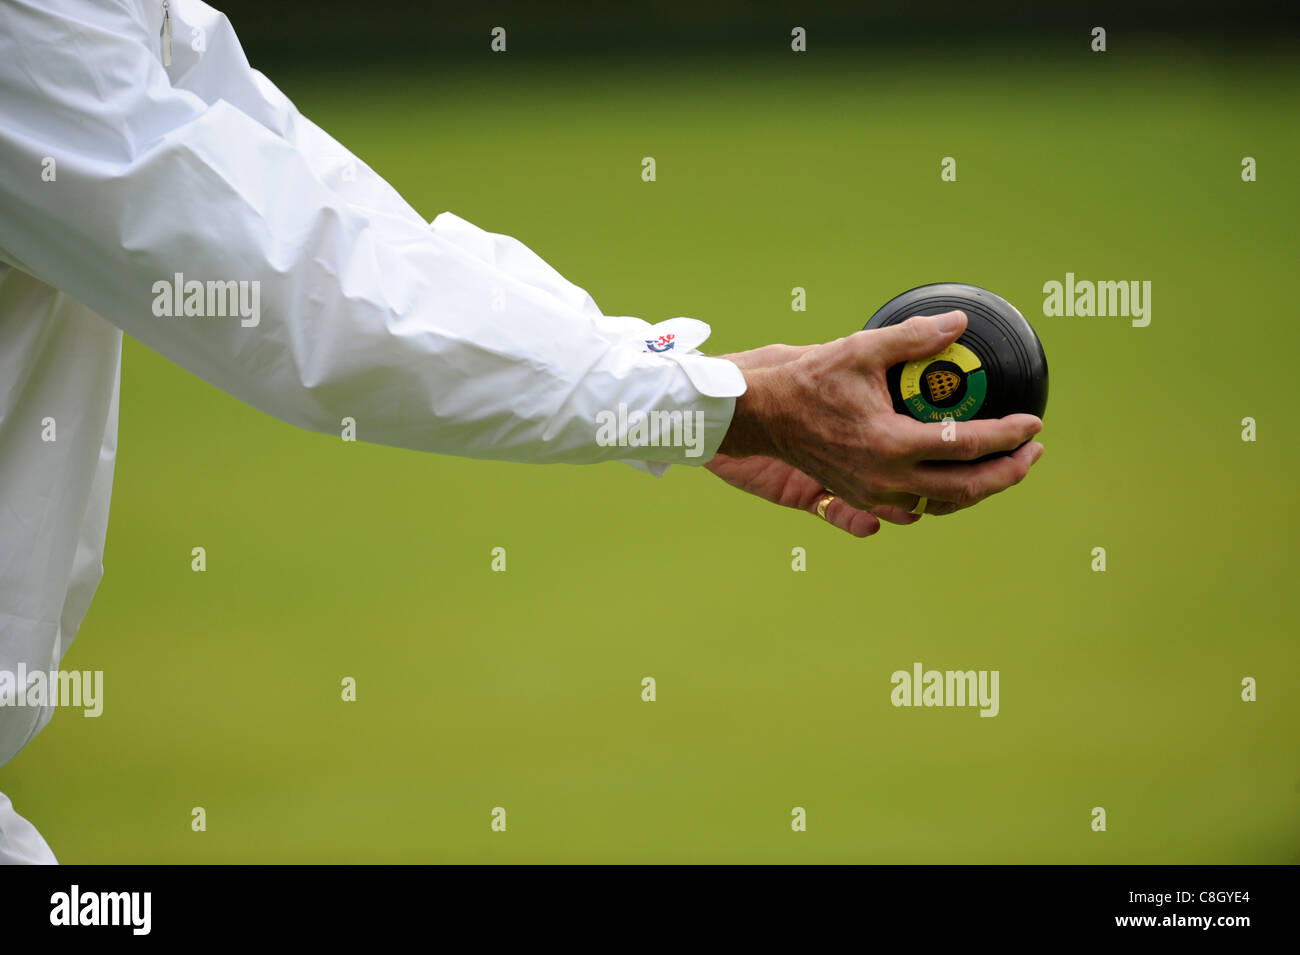 A close up of a man playing Lawn Bowls. - Stock Image